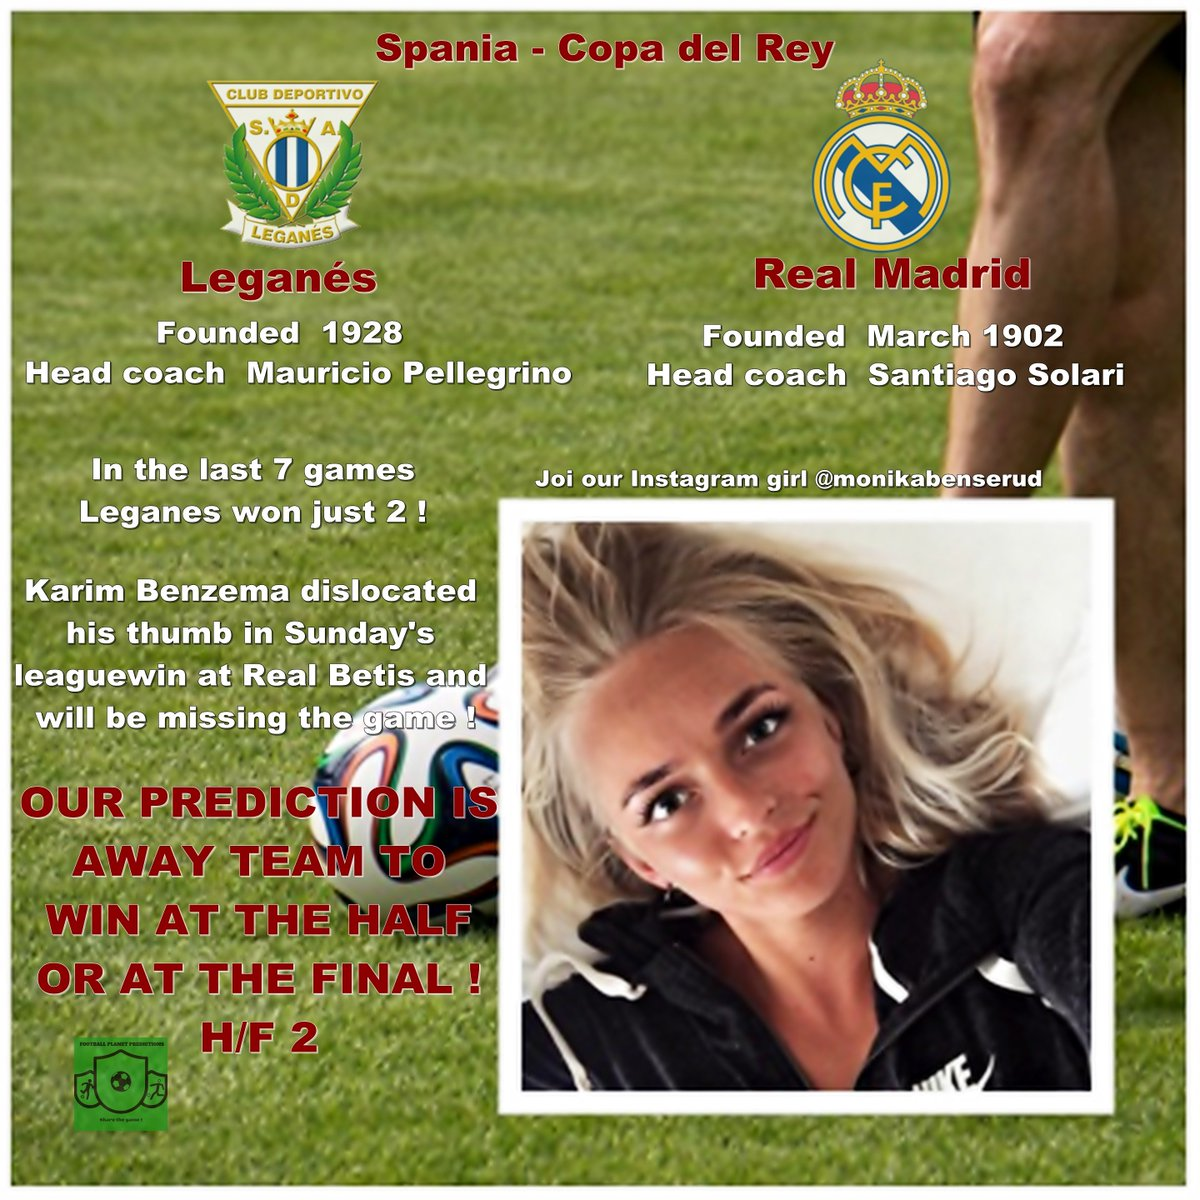 Spain - Copa del Rey!  Leganes - Real Madrid  - We expect to away team to win at the half or at the final ! . . Join our Instagram girl @monikabenserud  #copadelrey #leganes #matchday  #realmadridfamily #realmadridteam #realmadridfan #williamhill #handicapper #footballforlife